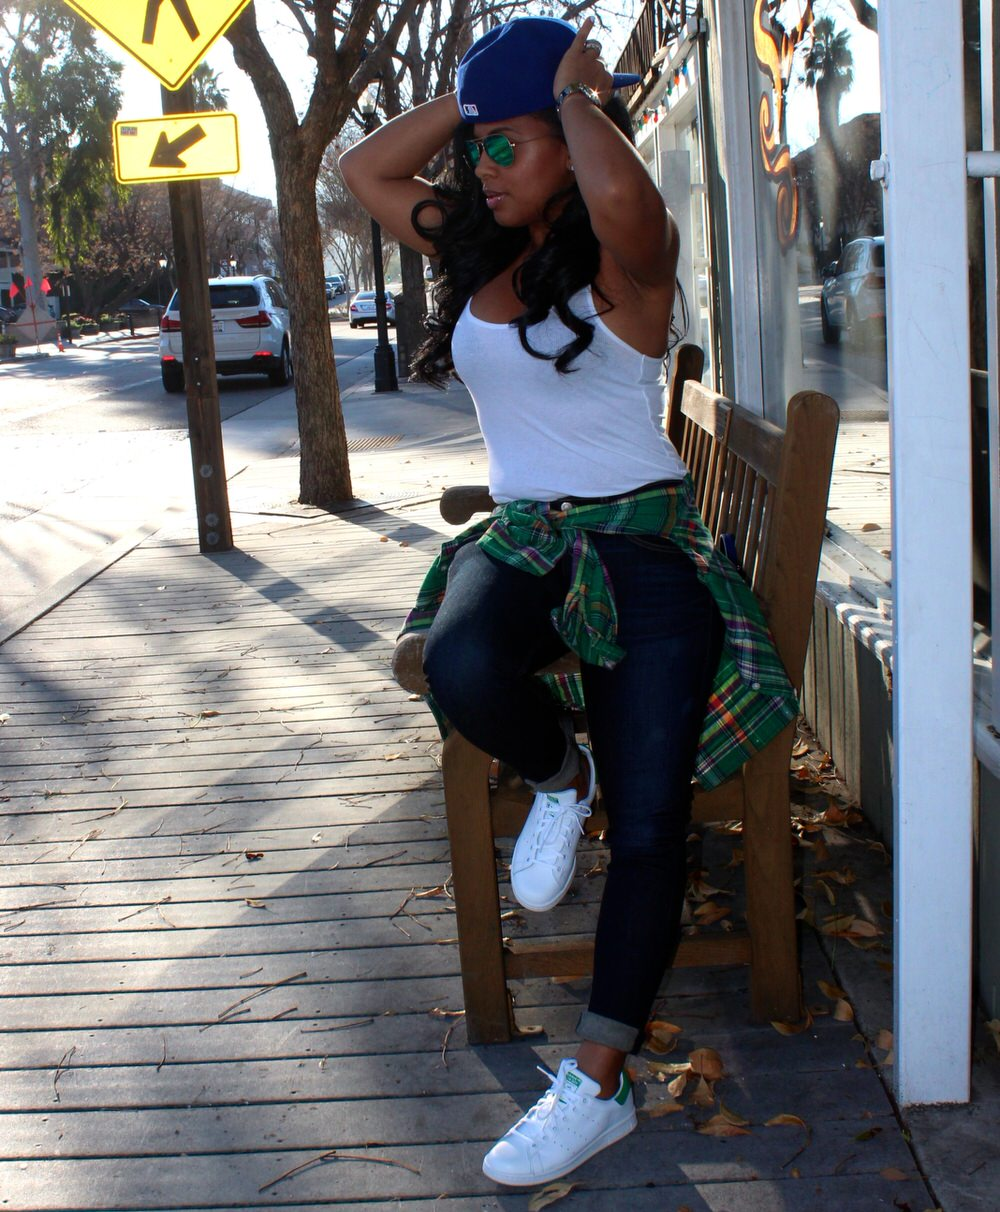 Adidas Tennis Shoes, Rag & Bone Jeans, Gap Tank, Plaid Shirt, LA Dodgers Baseball Cap, Moto Jacket, Phillip Lim Bag